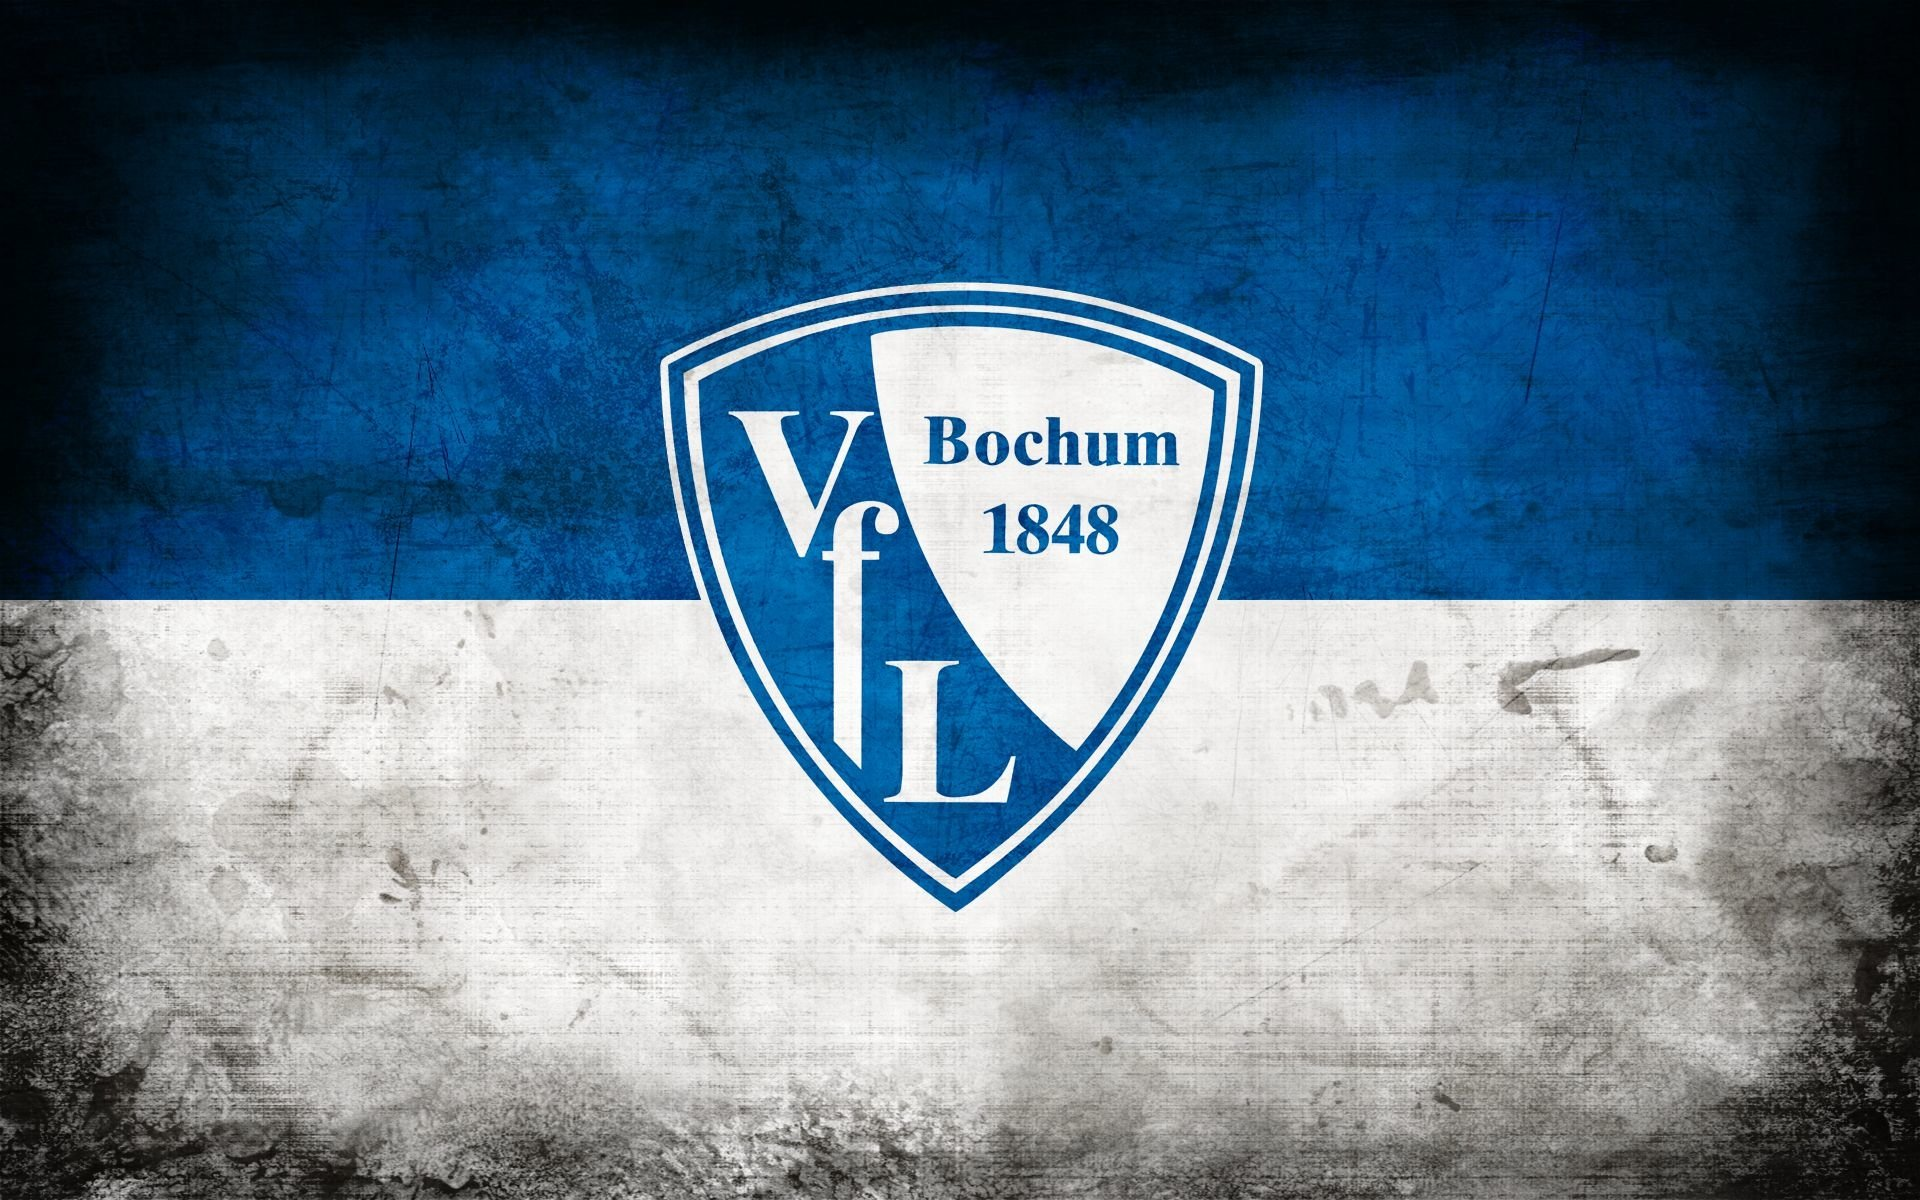 1 Vfl Bochum Hd Wallpapers Background Images Wallpaper Abyss